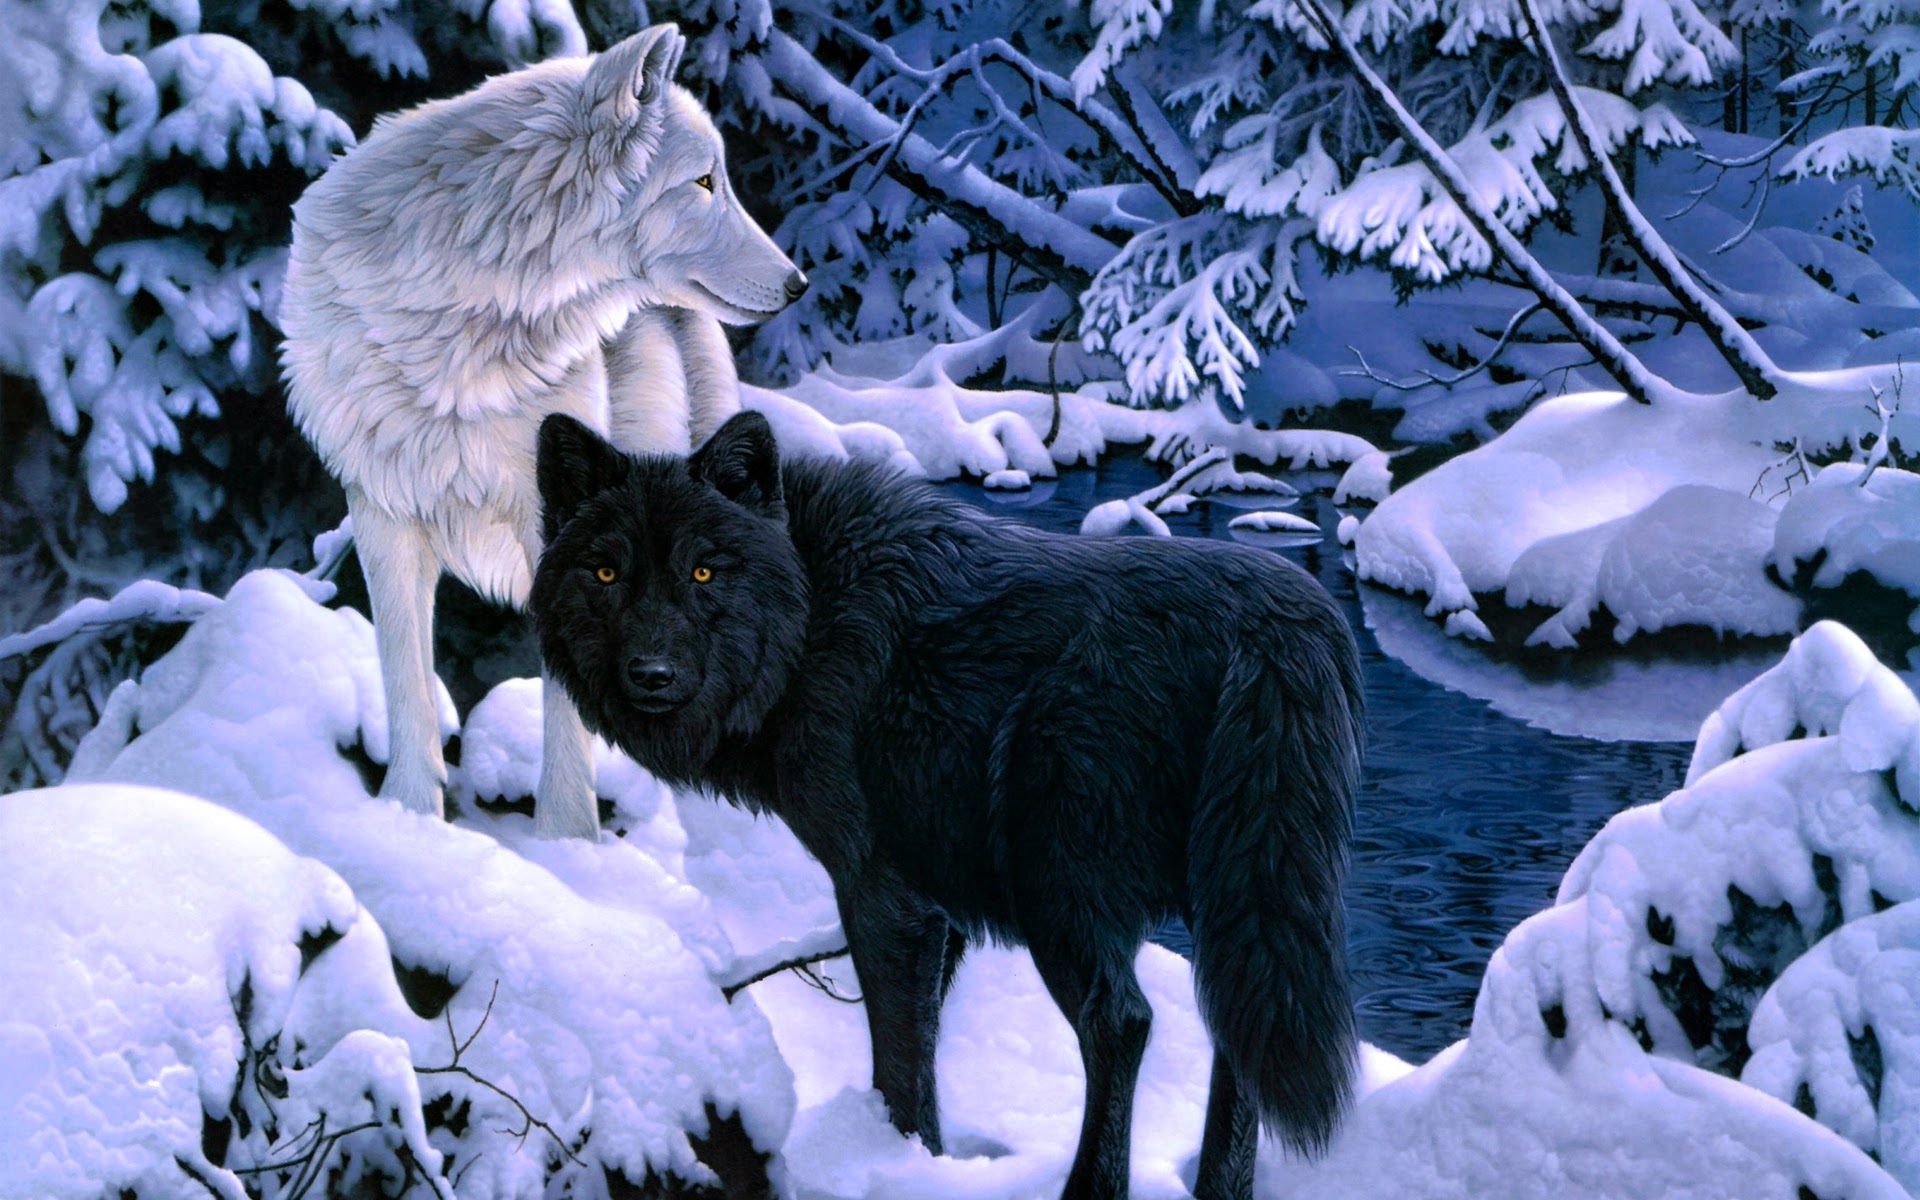 Home   187  animals   wild   187  Others   187  Wolf WallpaperWhite Wolf And Black Wolf Fighting